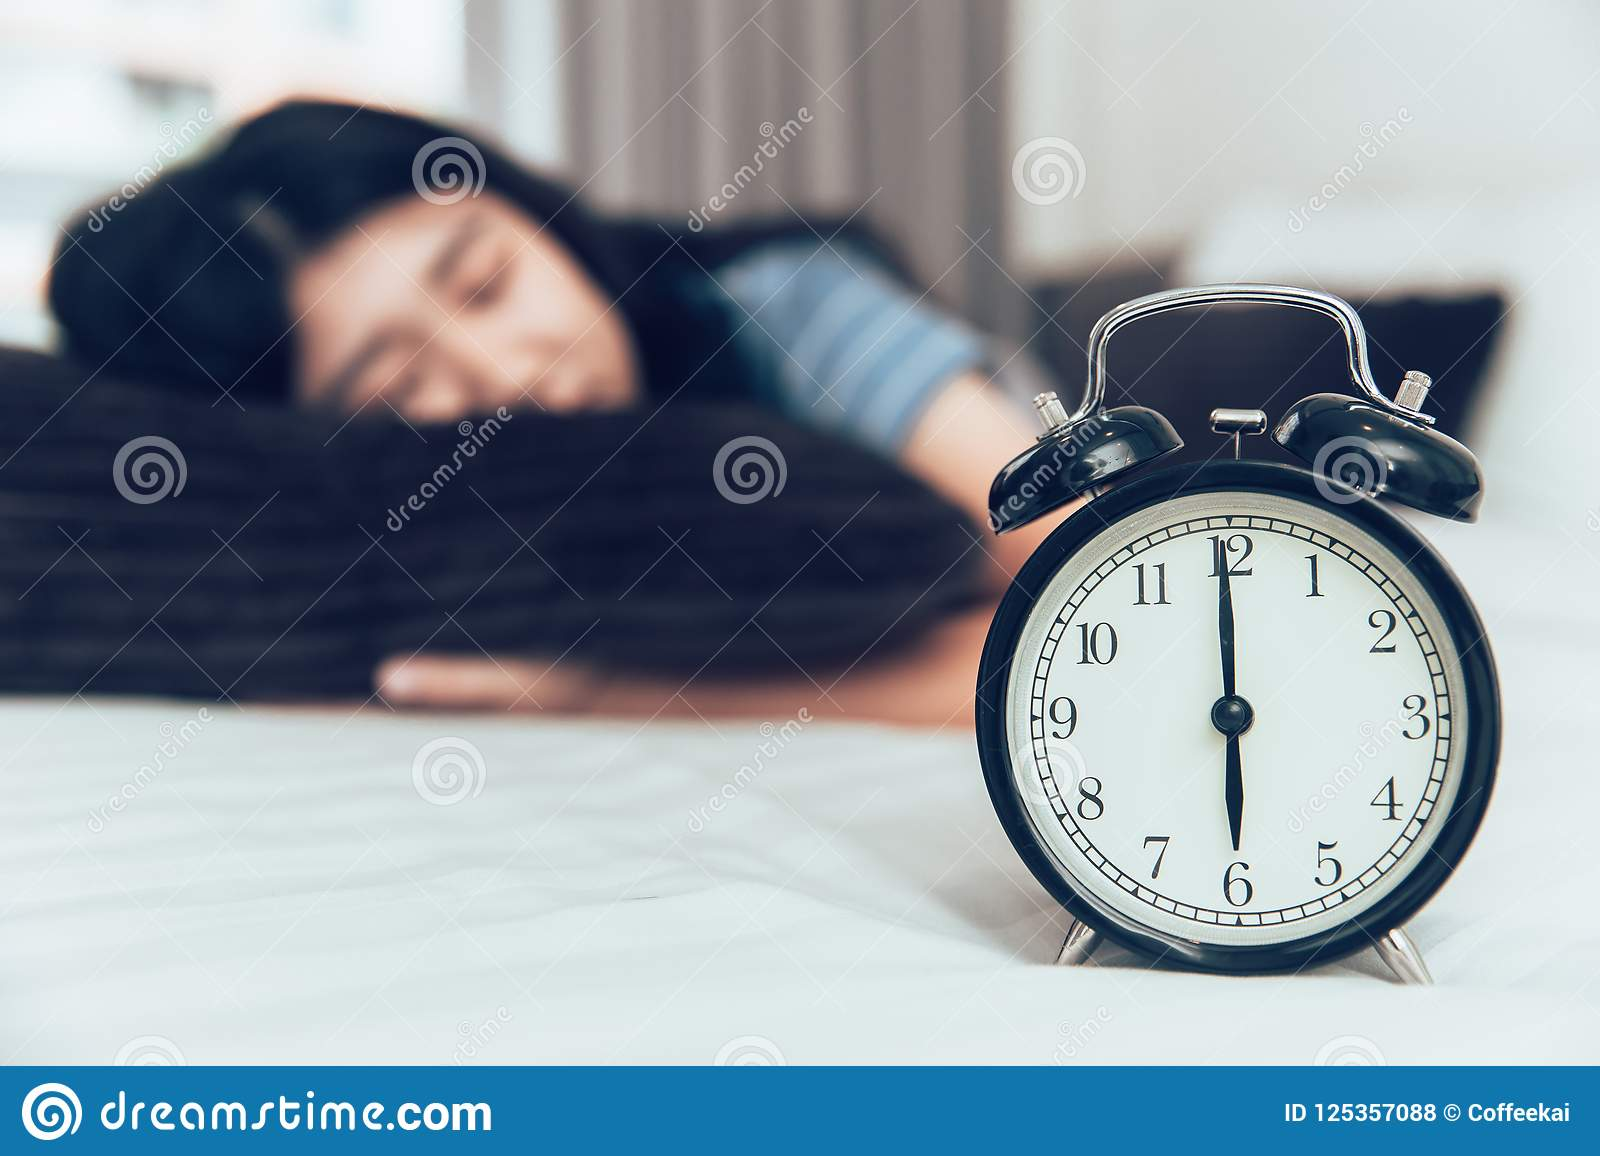 Sleeping or napping rest from tired day time